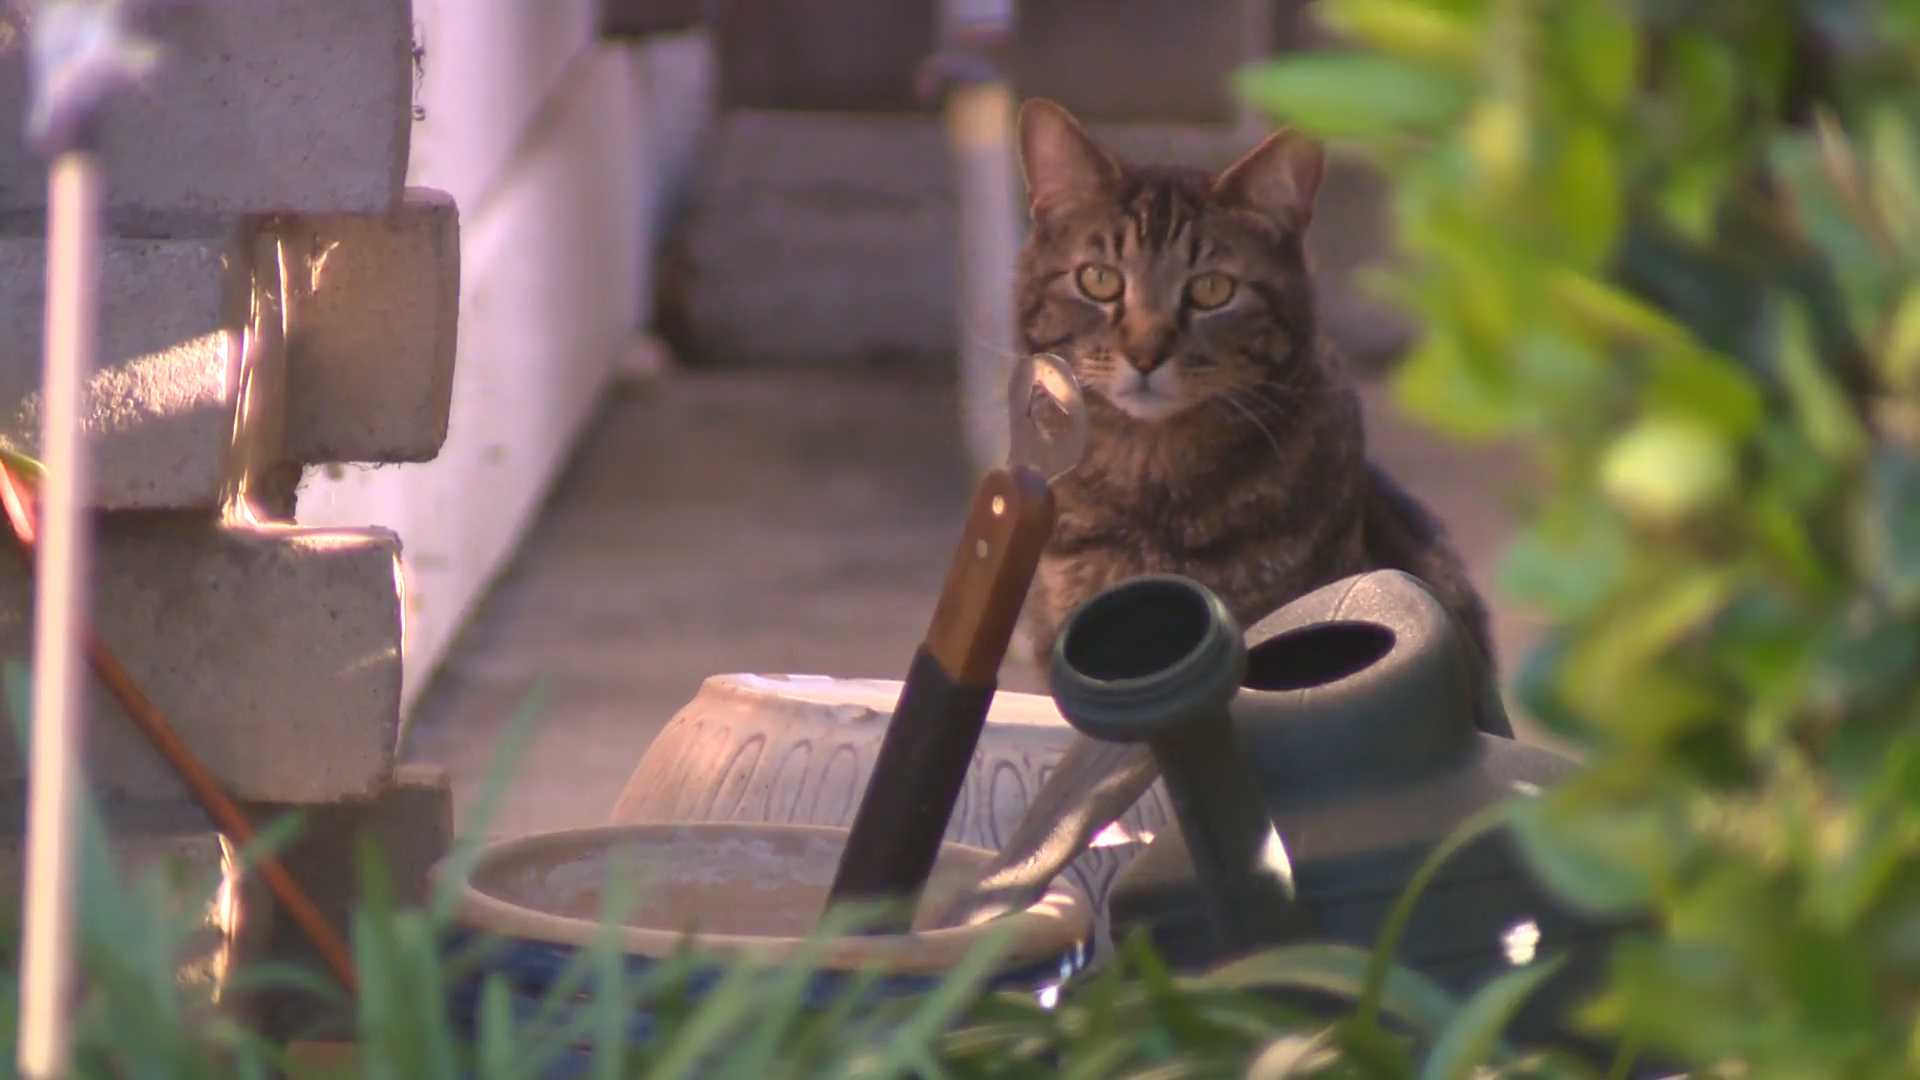 Woman accuses neighbors of trapping cats